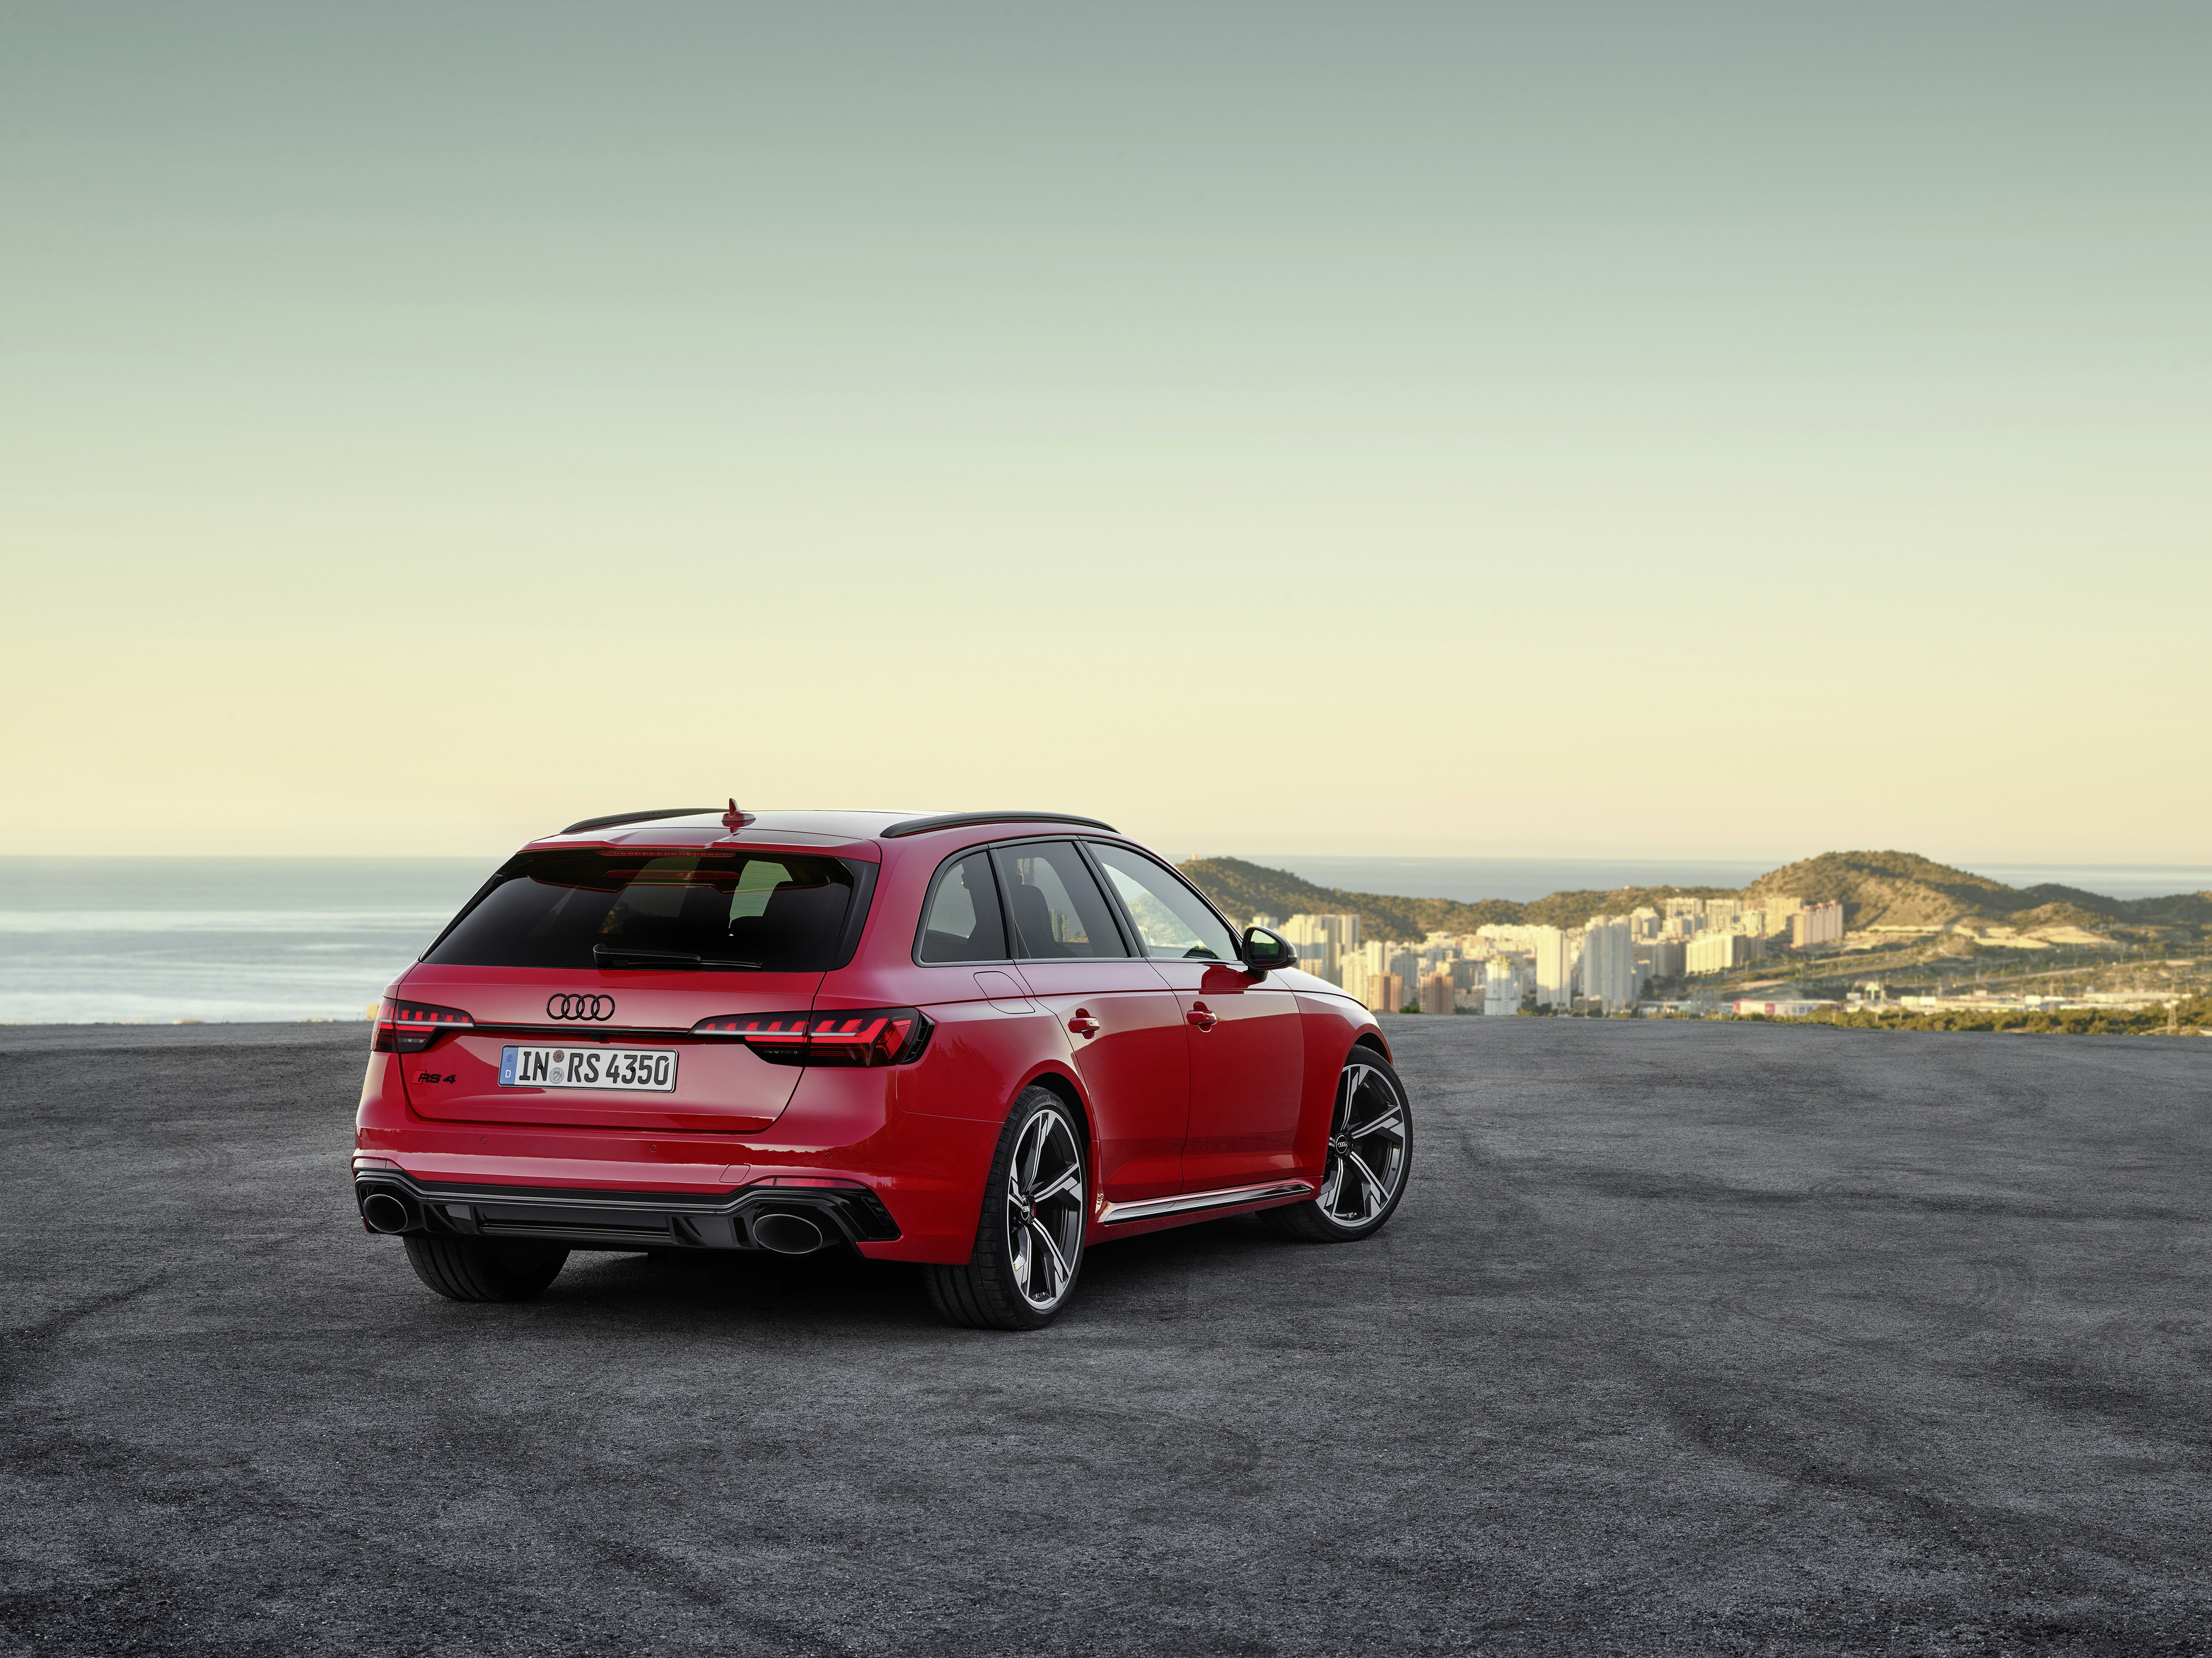 Quattro all-wheel-drive gives the RS 4 plenty of grip